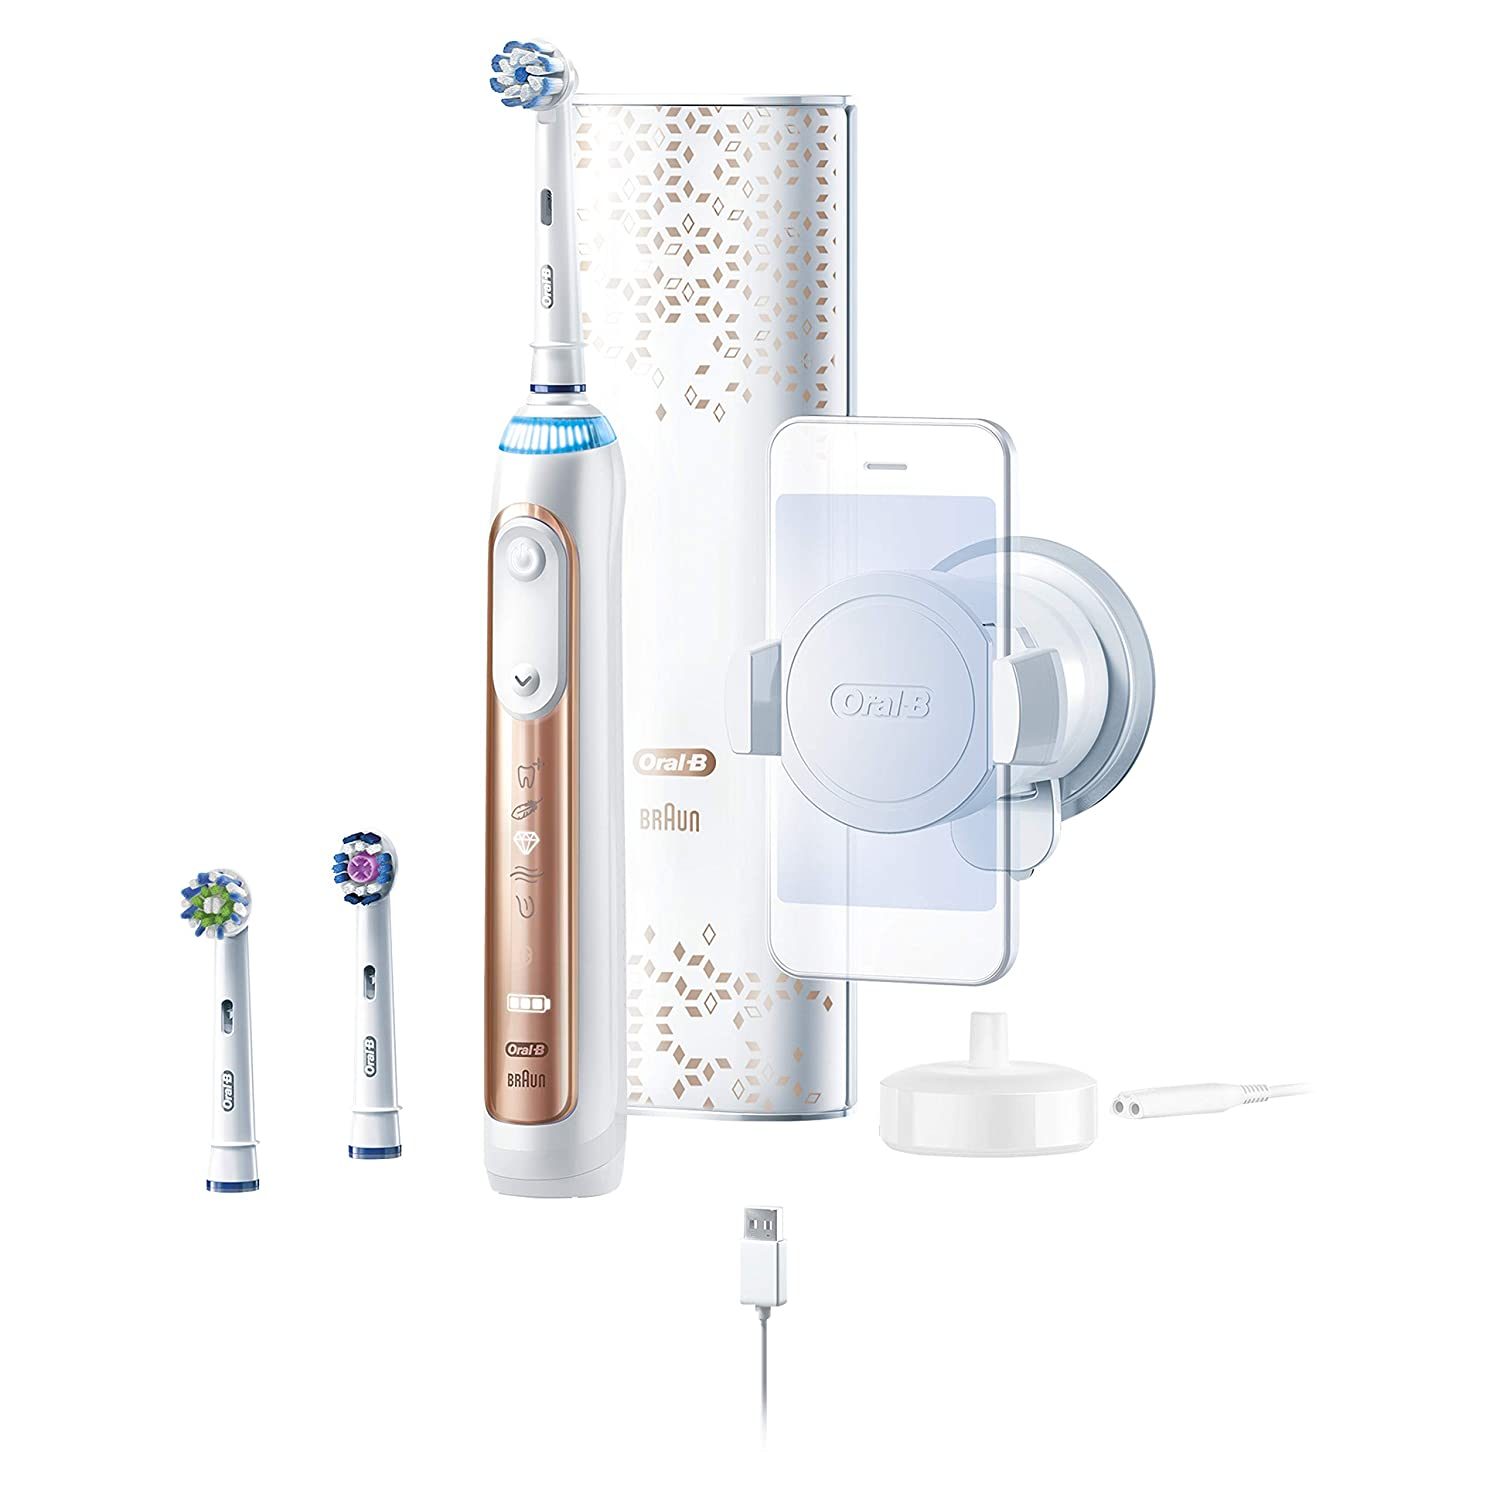 Oral-B 9600 Electric Toothbrush, 3 Brush Heads, Powered By Braun, Rose Gold Procter and Gamble D701.536.6XC